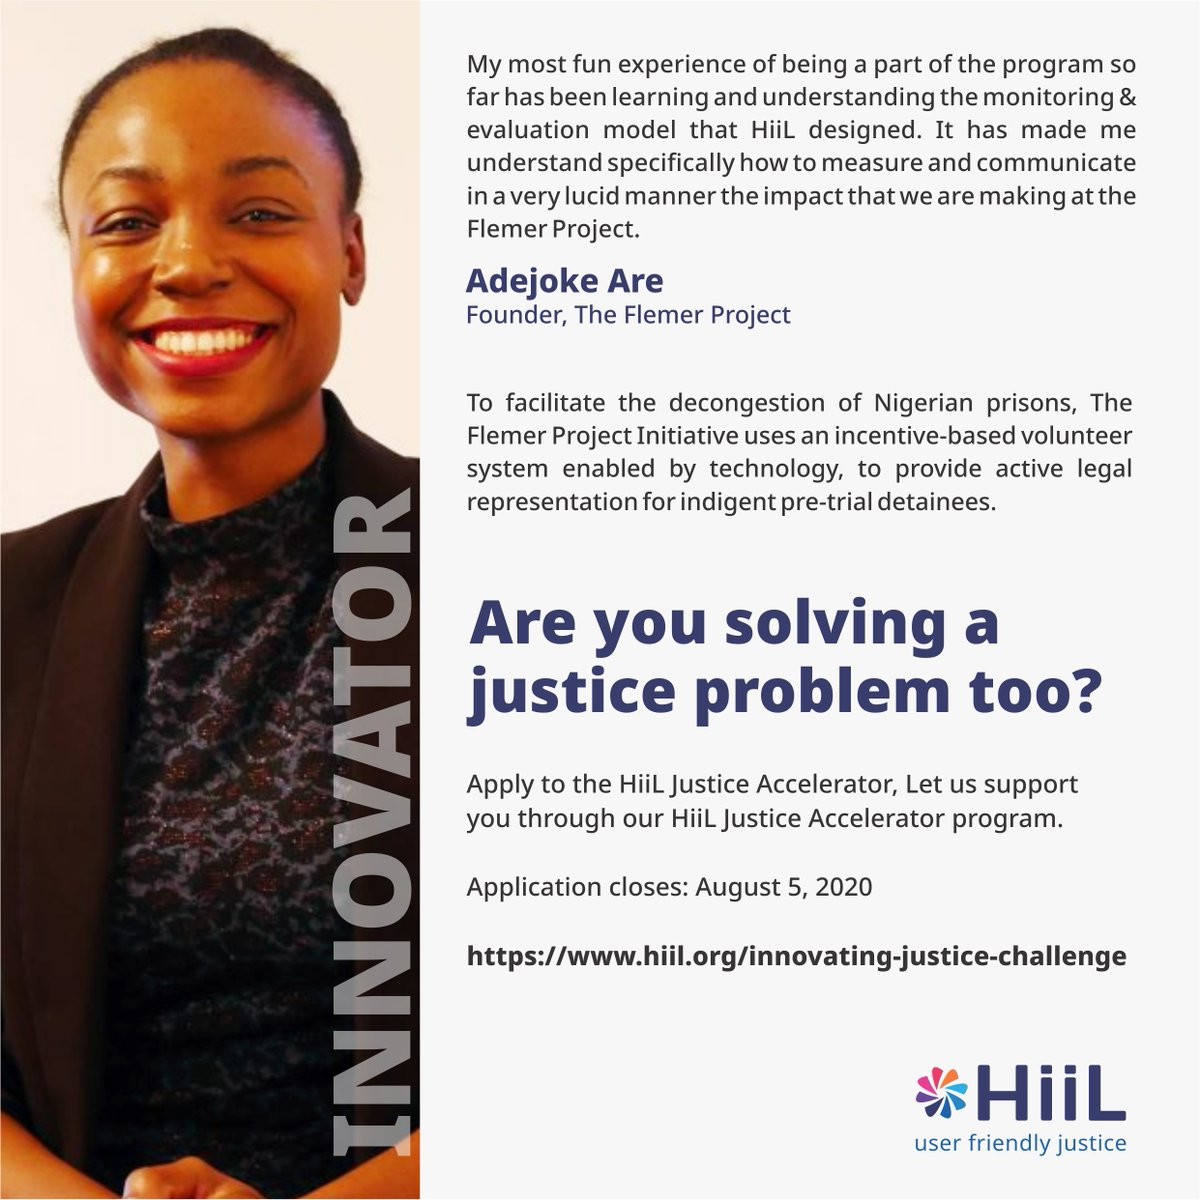 7 days to go!!!  What justice problem are you solving?  Applied for the Hiil Innovating Justice Challenge?  Applications close by August 5.  Apply here: https://t.co/3947YFZEgx  #justinnovate #innovatingjusticechallenge2020 #accesstojustice #SDGs #SDG16 https://t.co/onQUOVLm0J